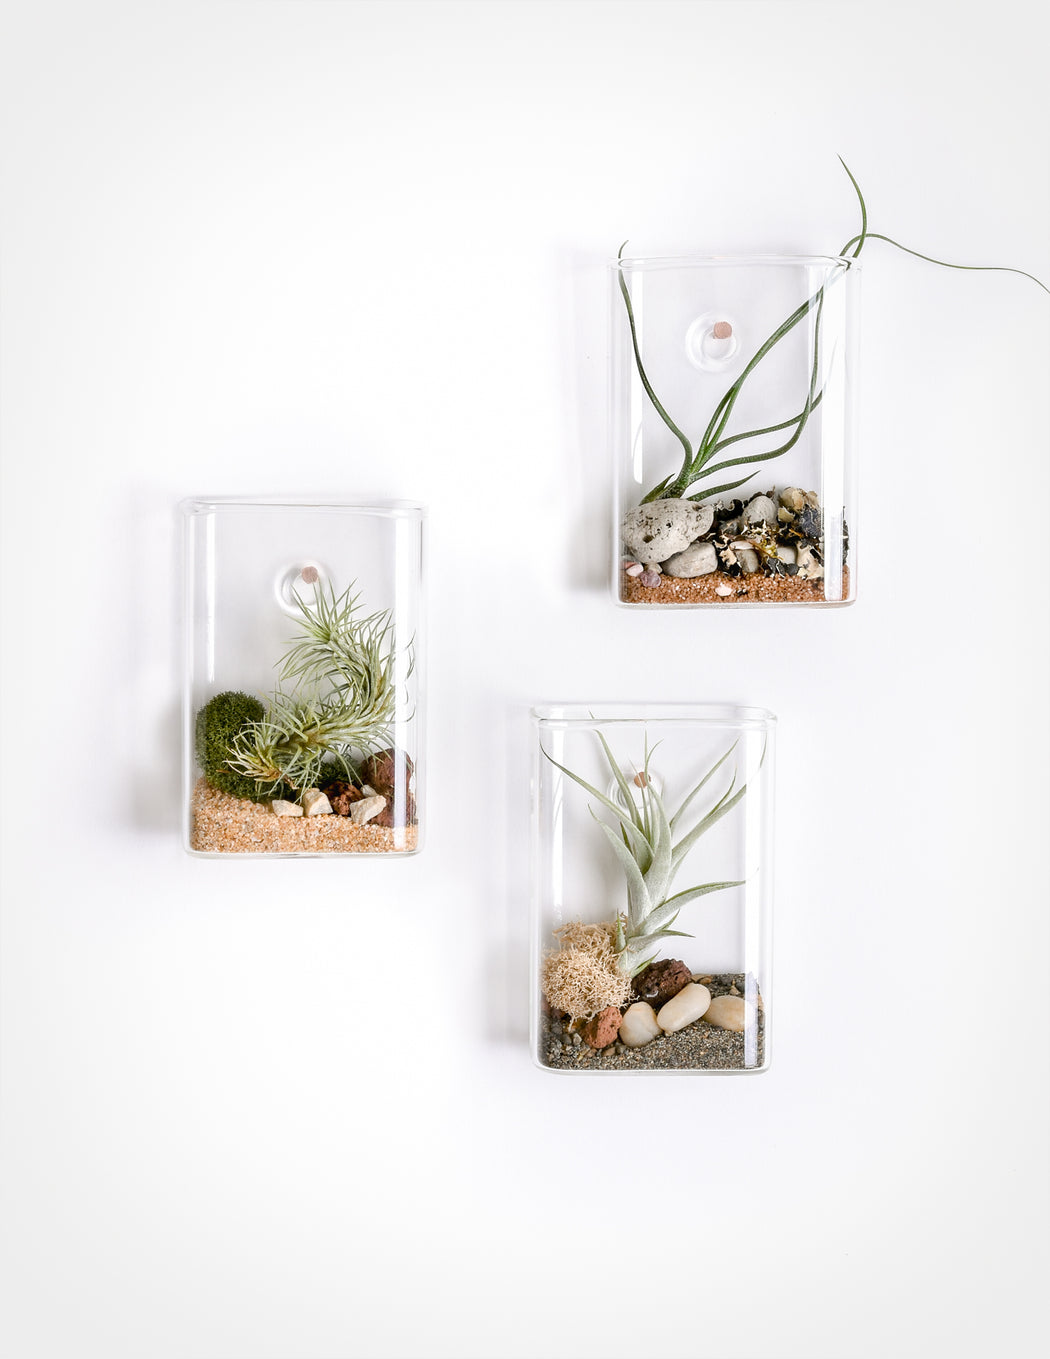 Pocket Aerium - Wall Hanging Tillandsia Terrarium - Pistils Nursery Air Plants